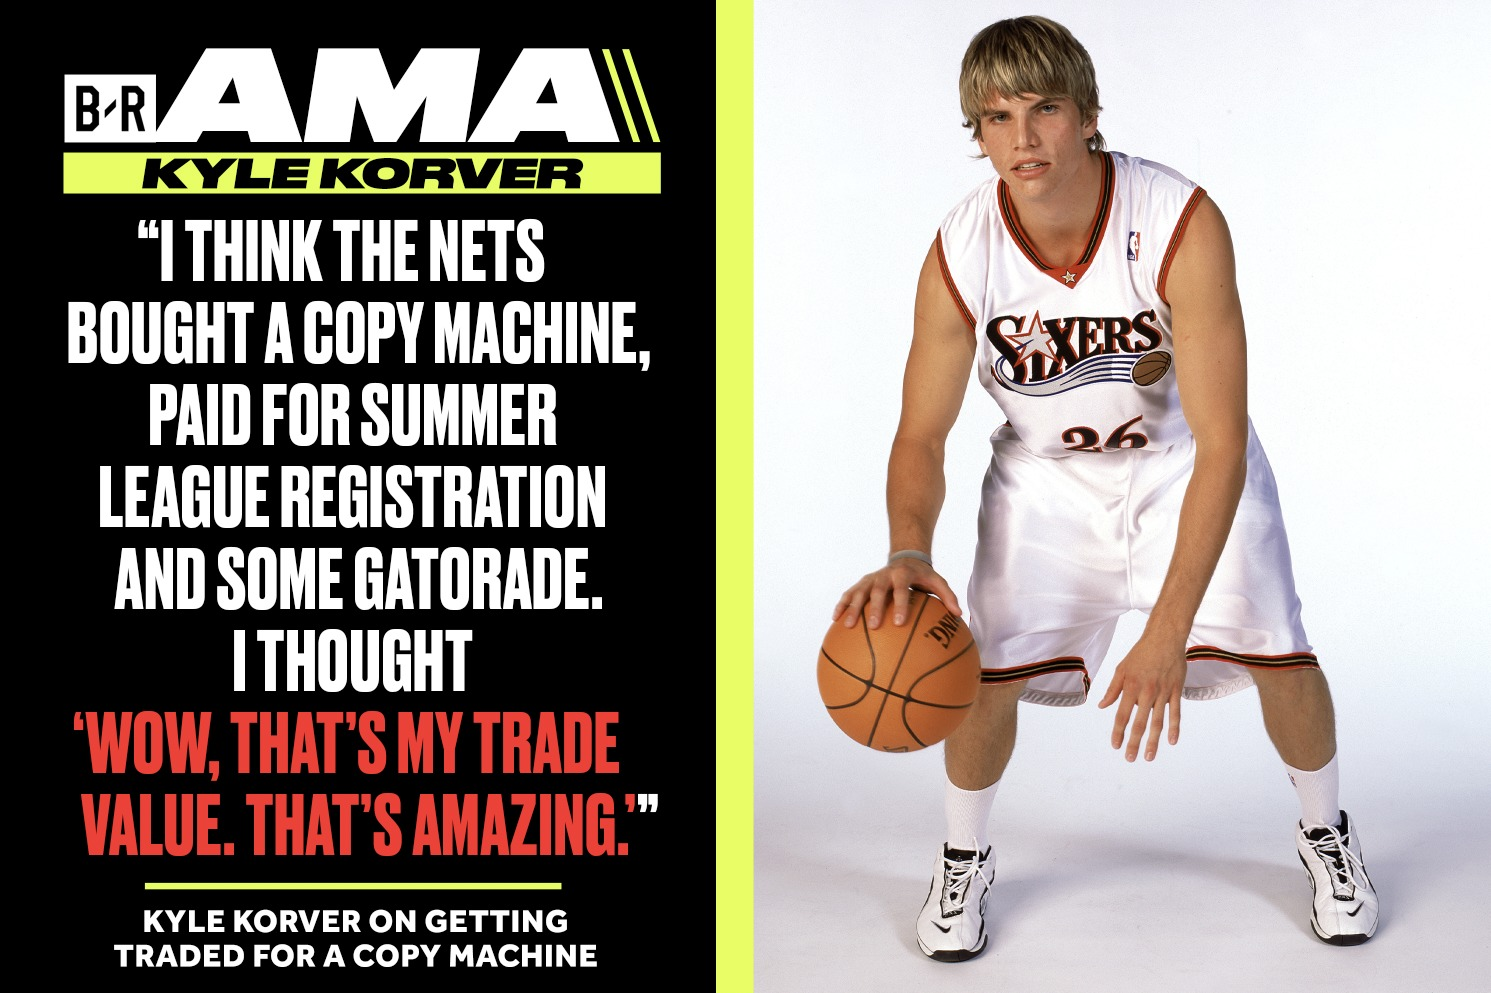 Korver on Being Traded for Copy Machine